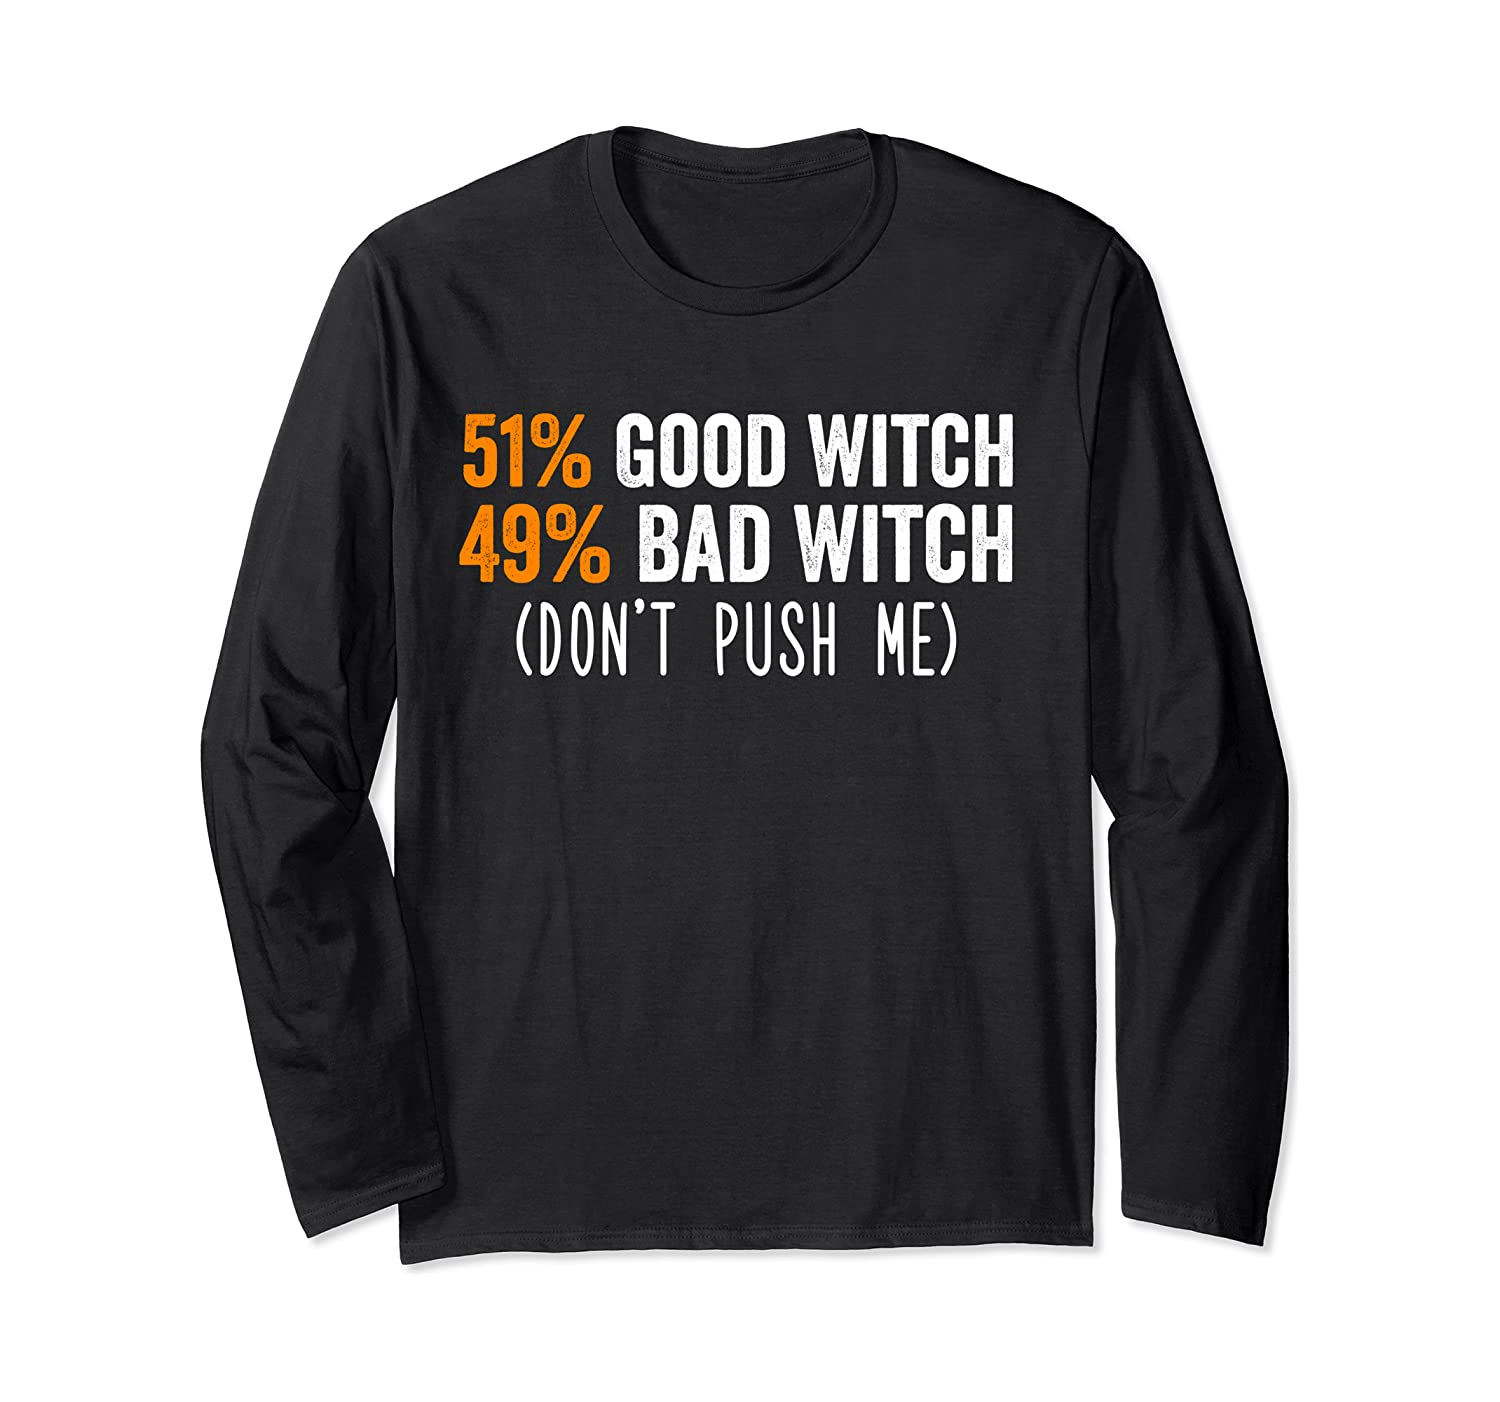 51% Good Witch 49% Bad Witch Don't Push Me Halloween Costume Long Sleeve T-Shirt